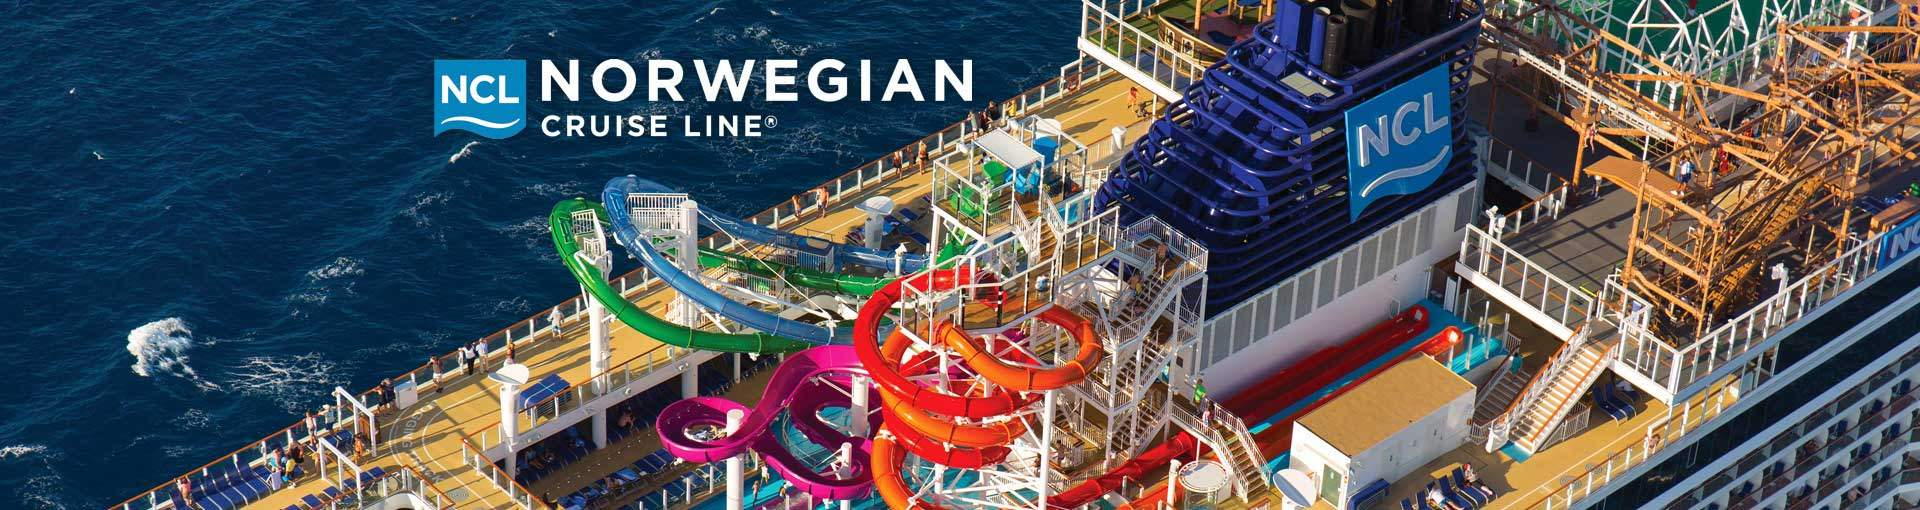 Norwegian Cruise Line Cruises 2019 And 2020 Cruise Deals